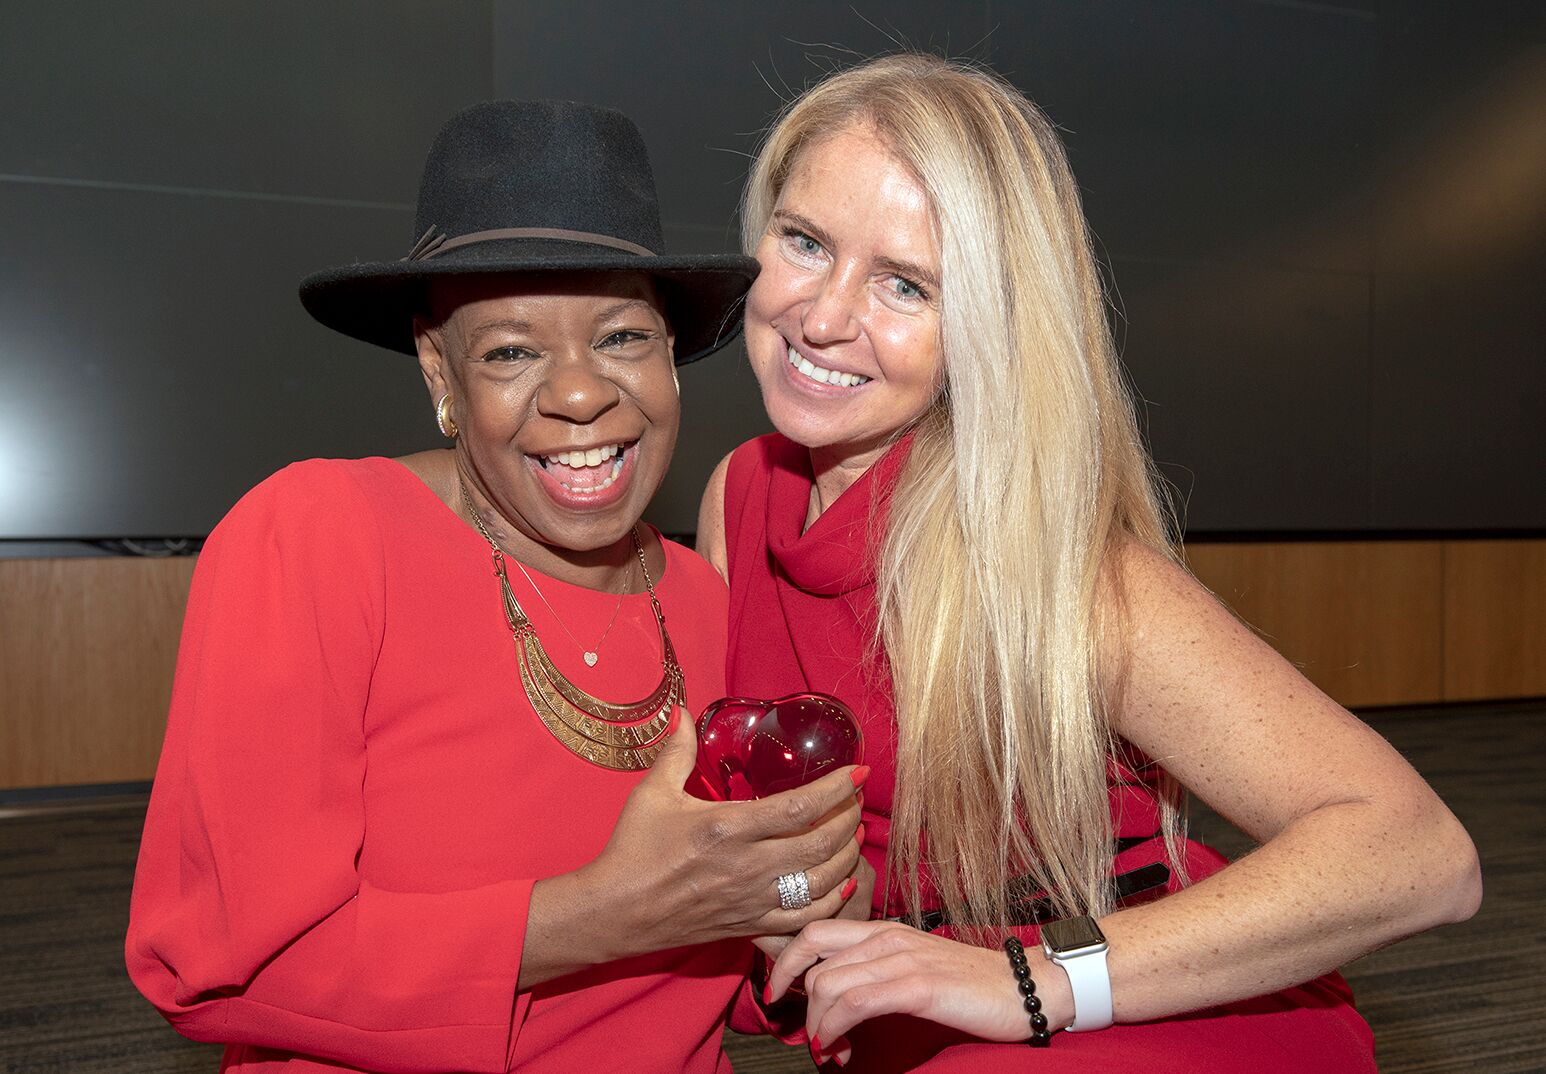 Yvonne Fleming (left) and Dr. Evelina Grayver celebrate during Go Red for Women event